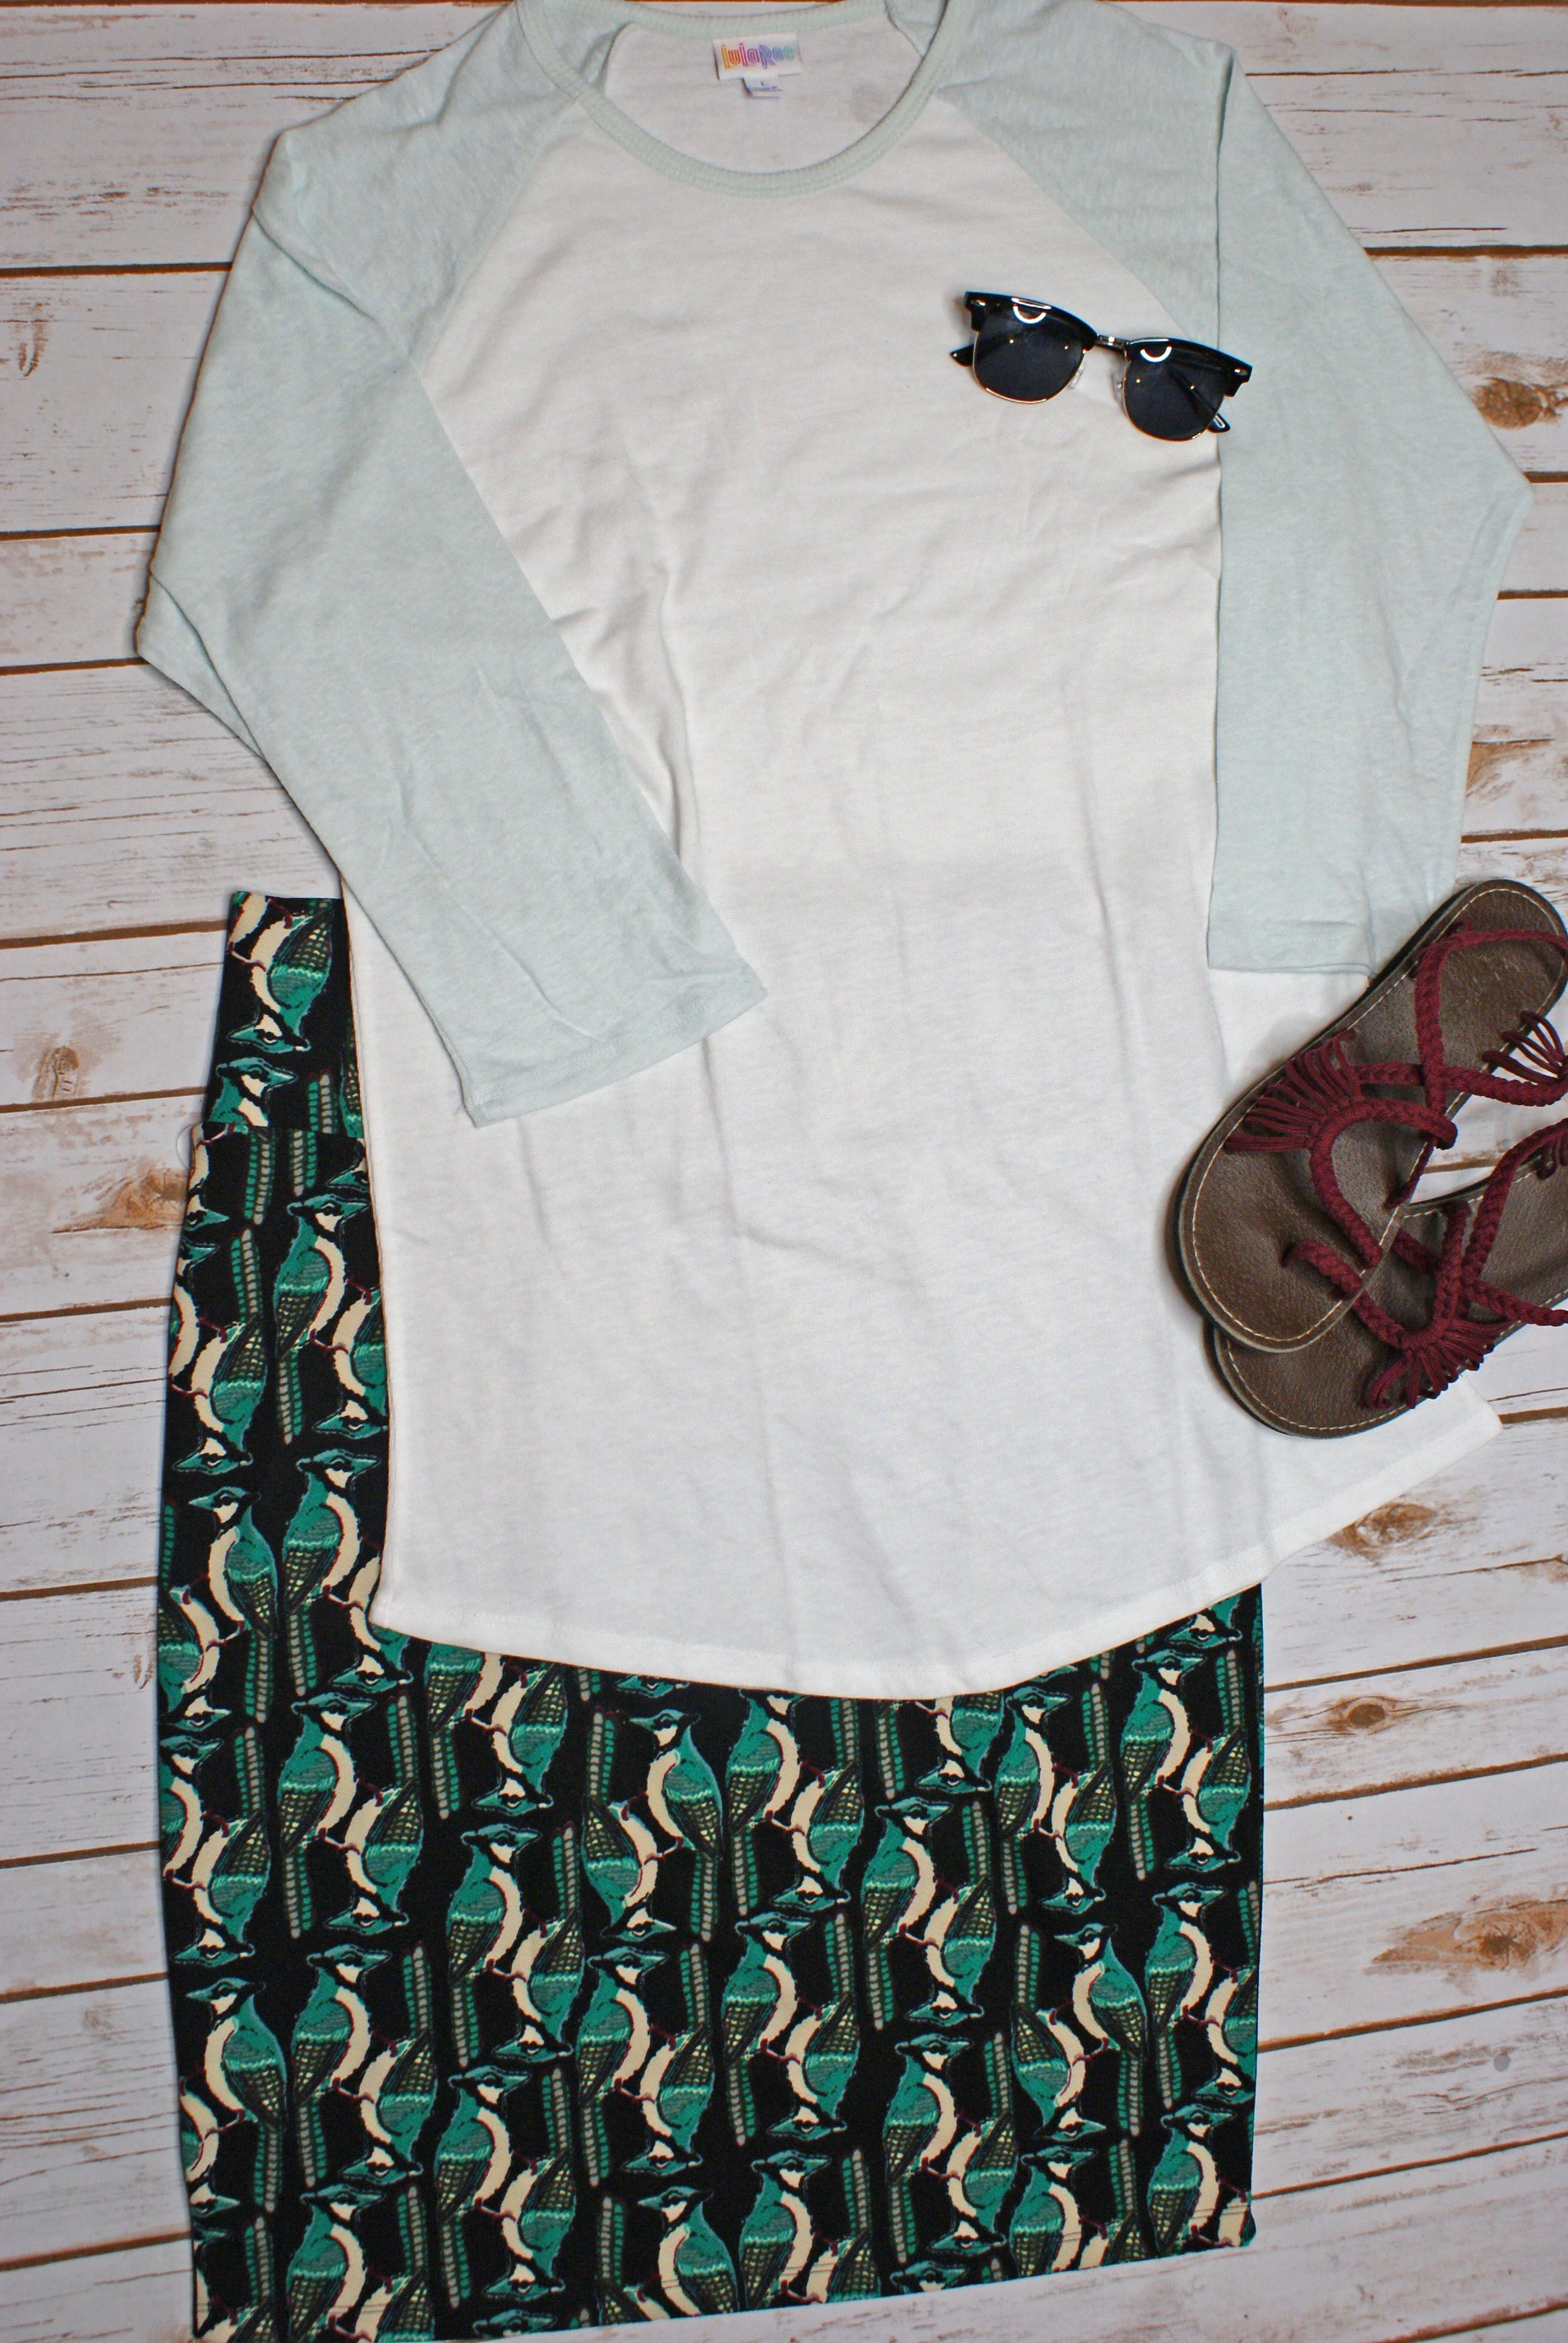 Green t shirt dress outfit  mint and white LuLaRoe Randy  black and teal mocking bird Cassie